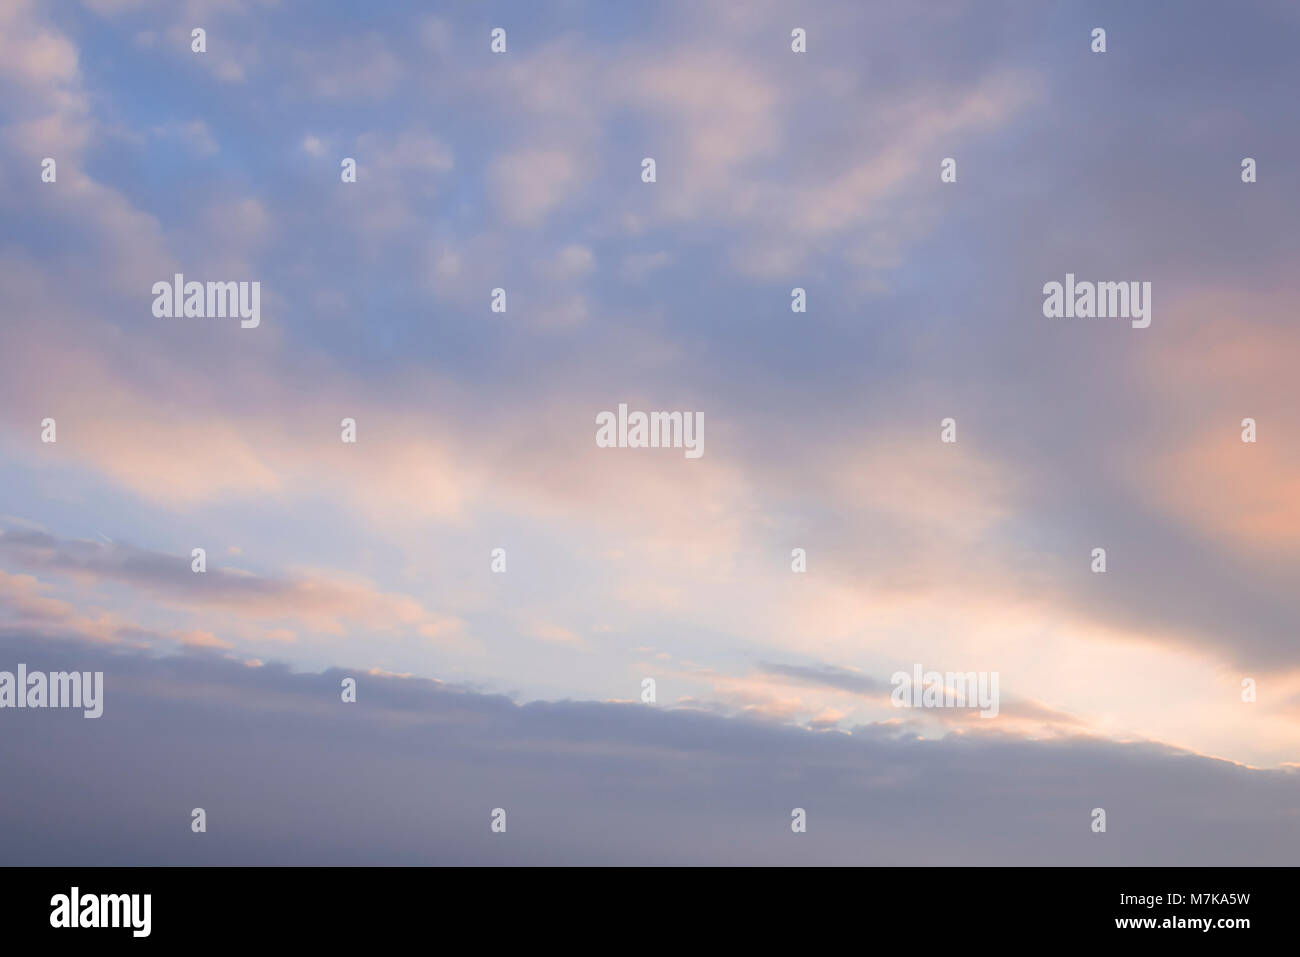 Colourful backgrounds sky overlay. Evening Morning sky with orange hues. - Stock Image